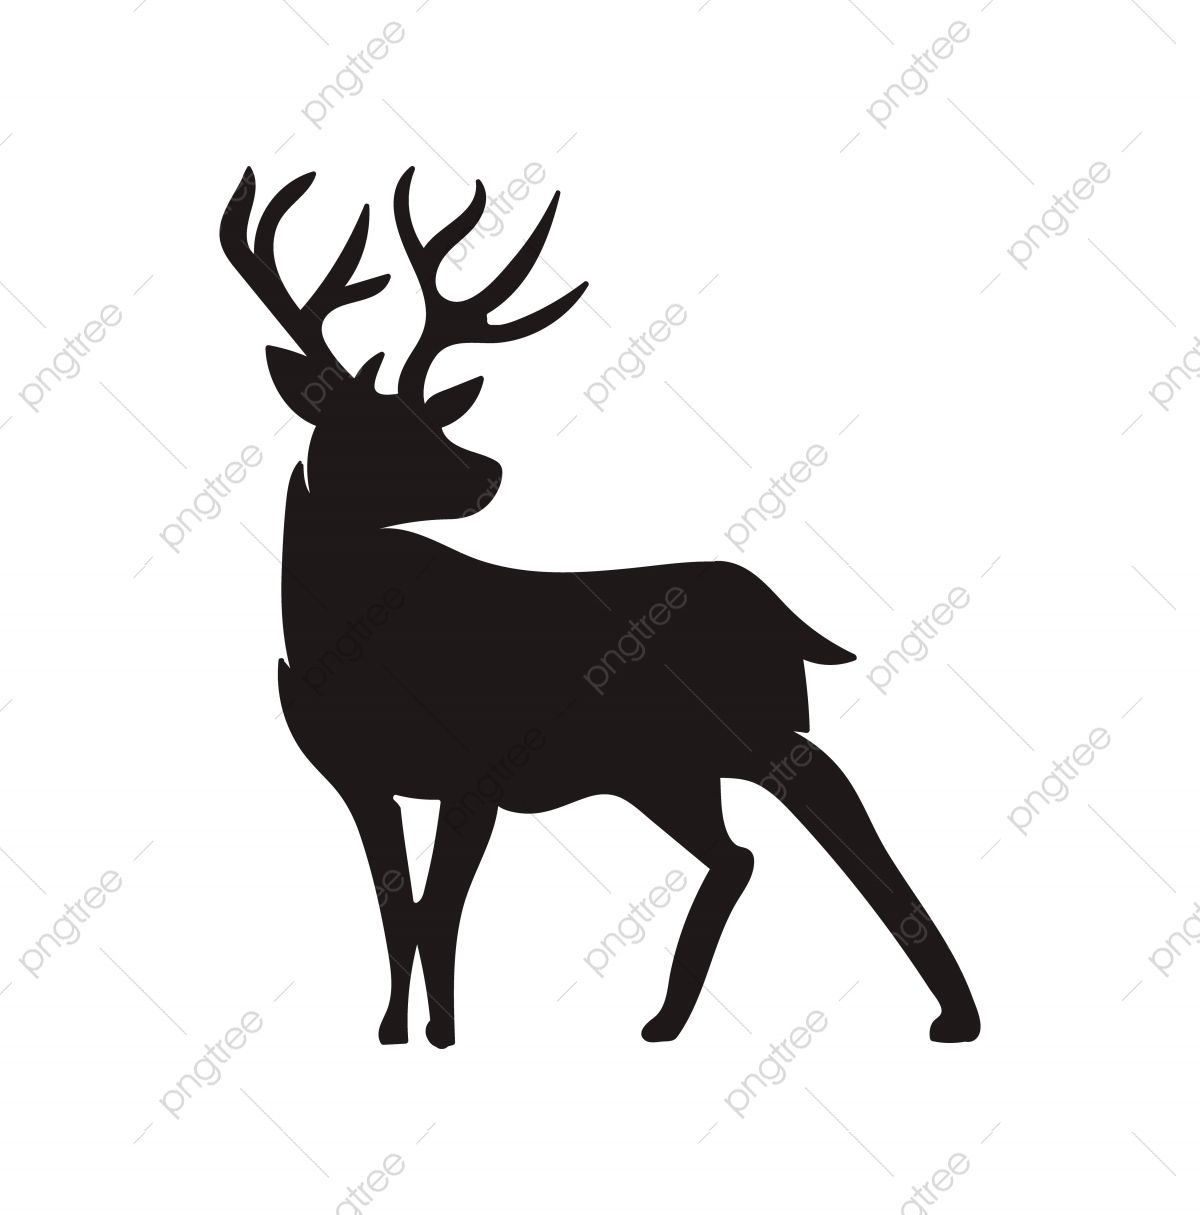 Deer Silhouette Vector Animal Antler Art Png And Vector With Transparent Background For Free Download In 2020 Deer Silhouette Art Deer Silhouette Silhouette Vector